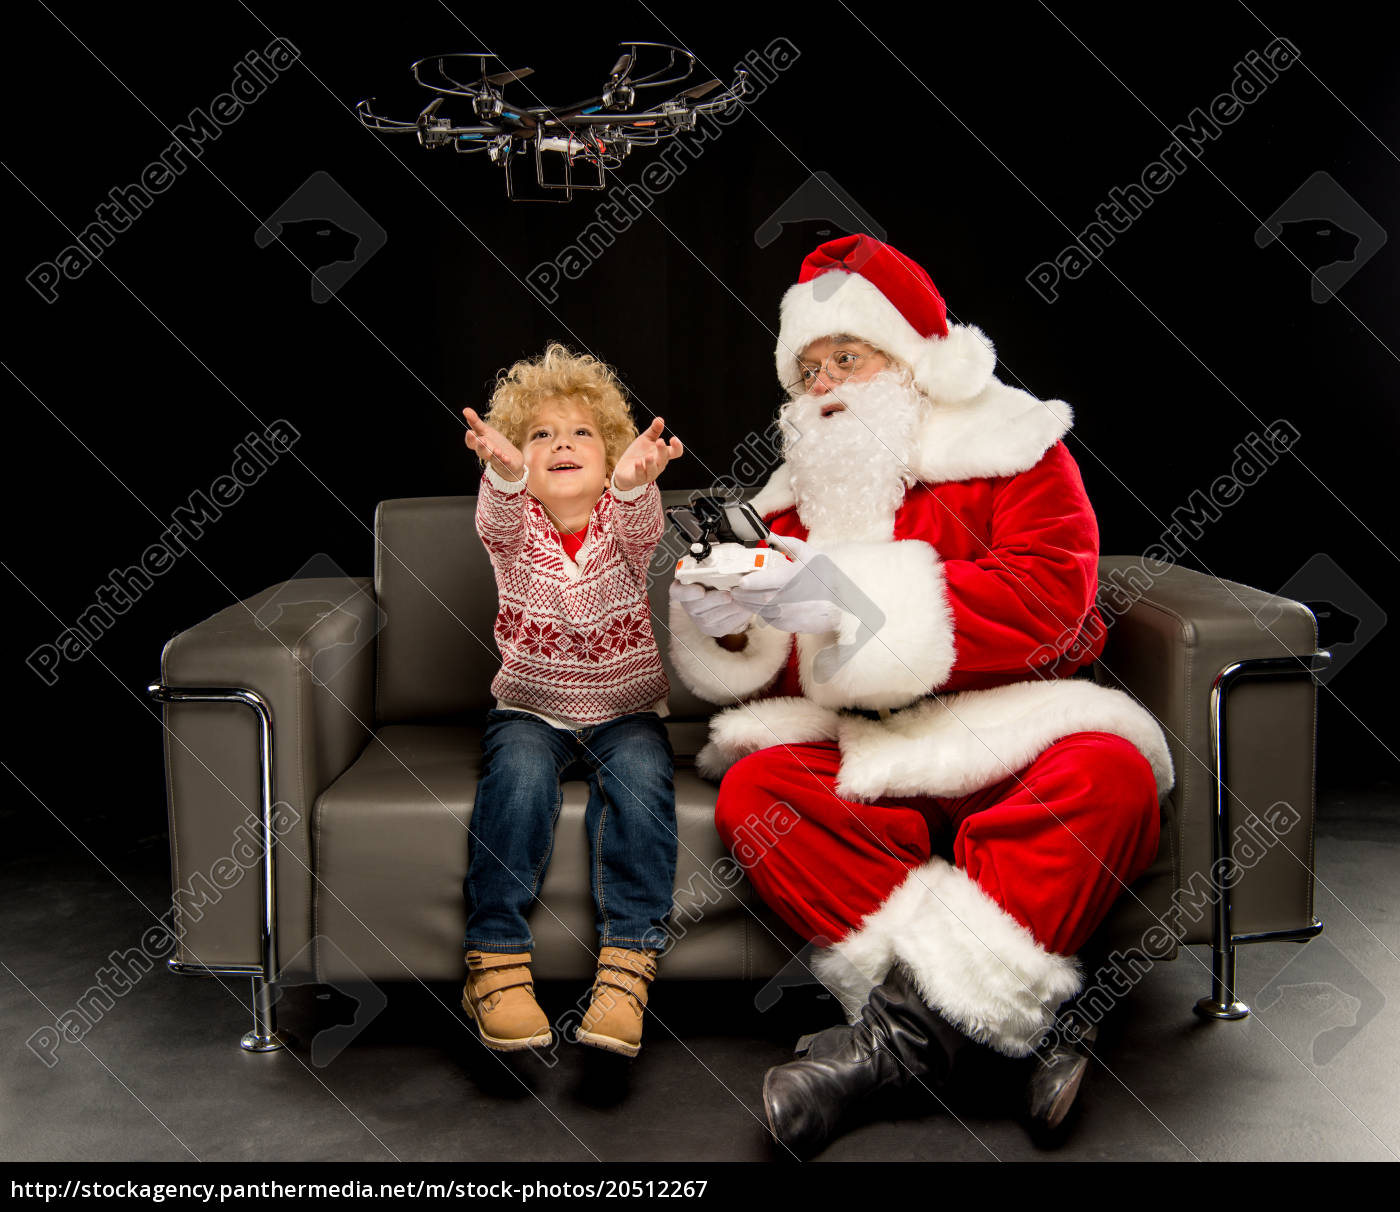 santa, claus, with, child, using, hexacopter - 20512267